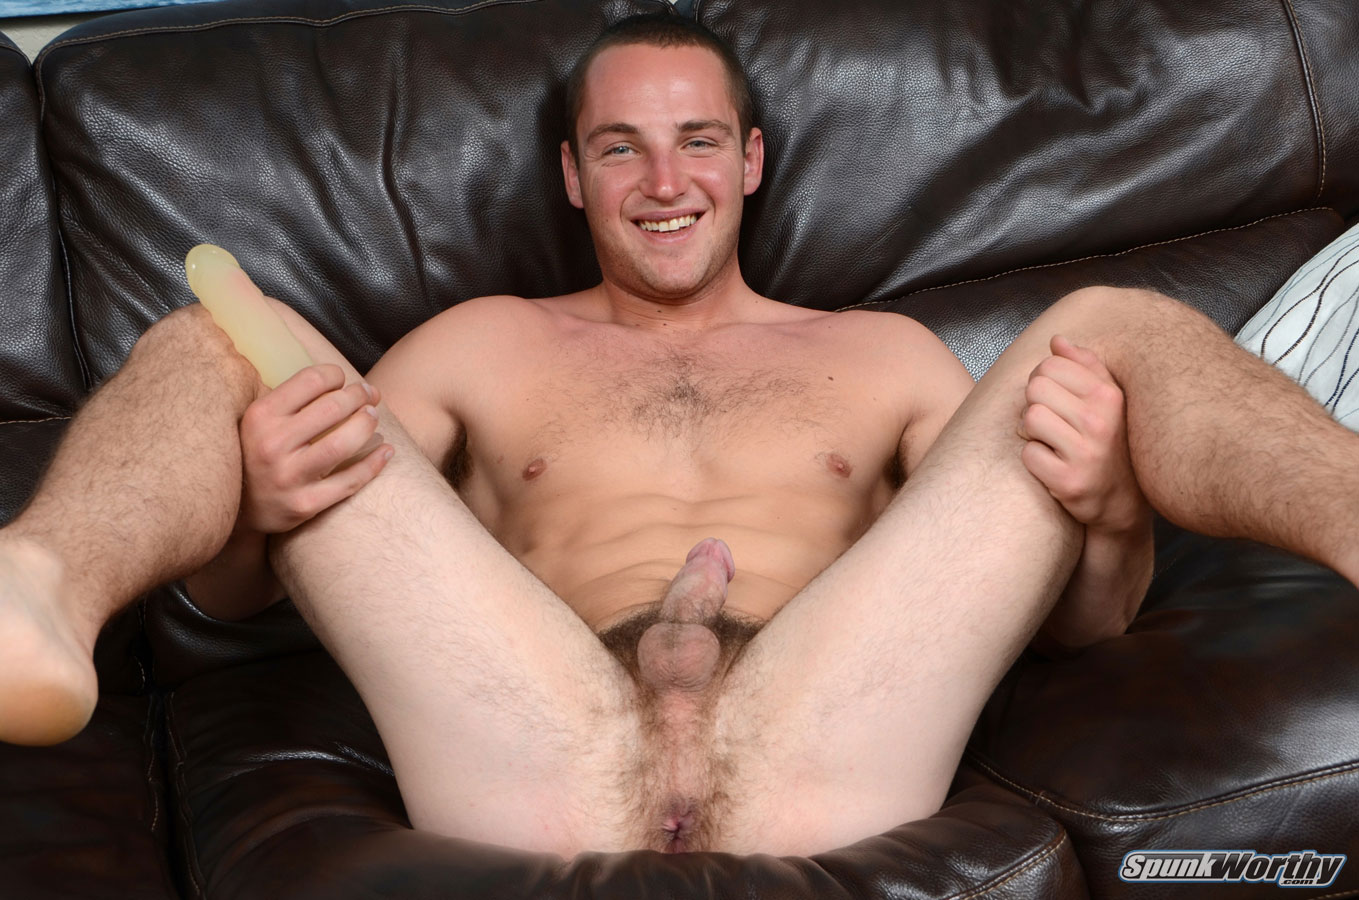 SpunkWorthy-Dean-Straight-Marine-Uses-A-Dildo-On-Hairy-Ass-Amateur-Gay-Porn-04 Ripped Marine Fucks His Straight Hairy Ass With A Dildo